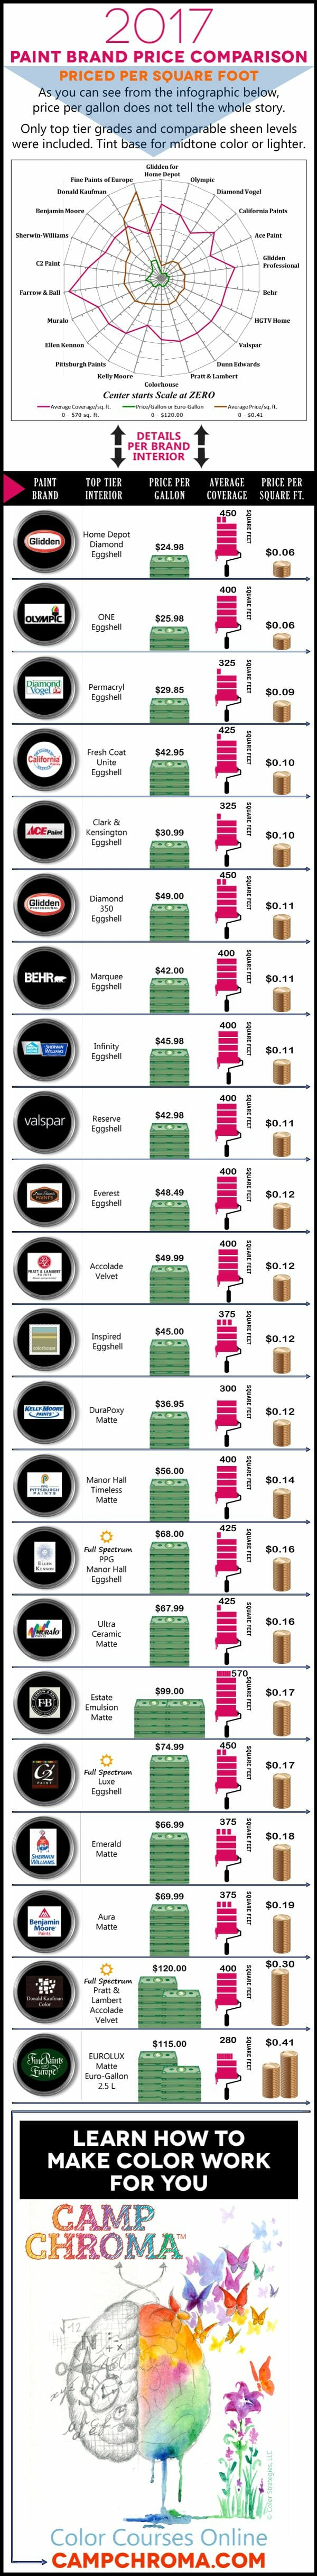 Paint price comparison 2017